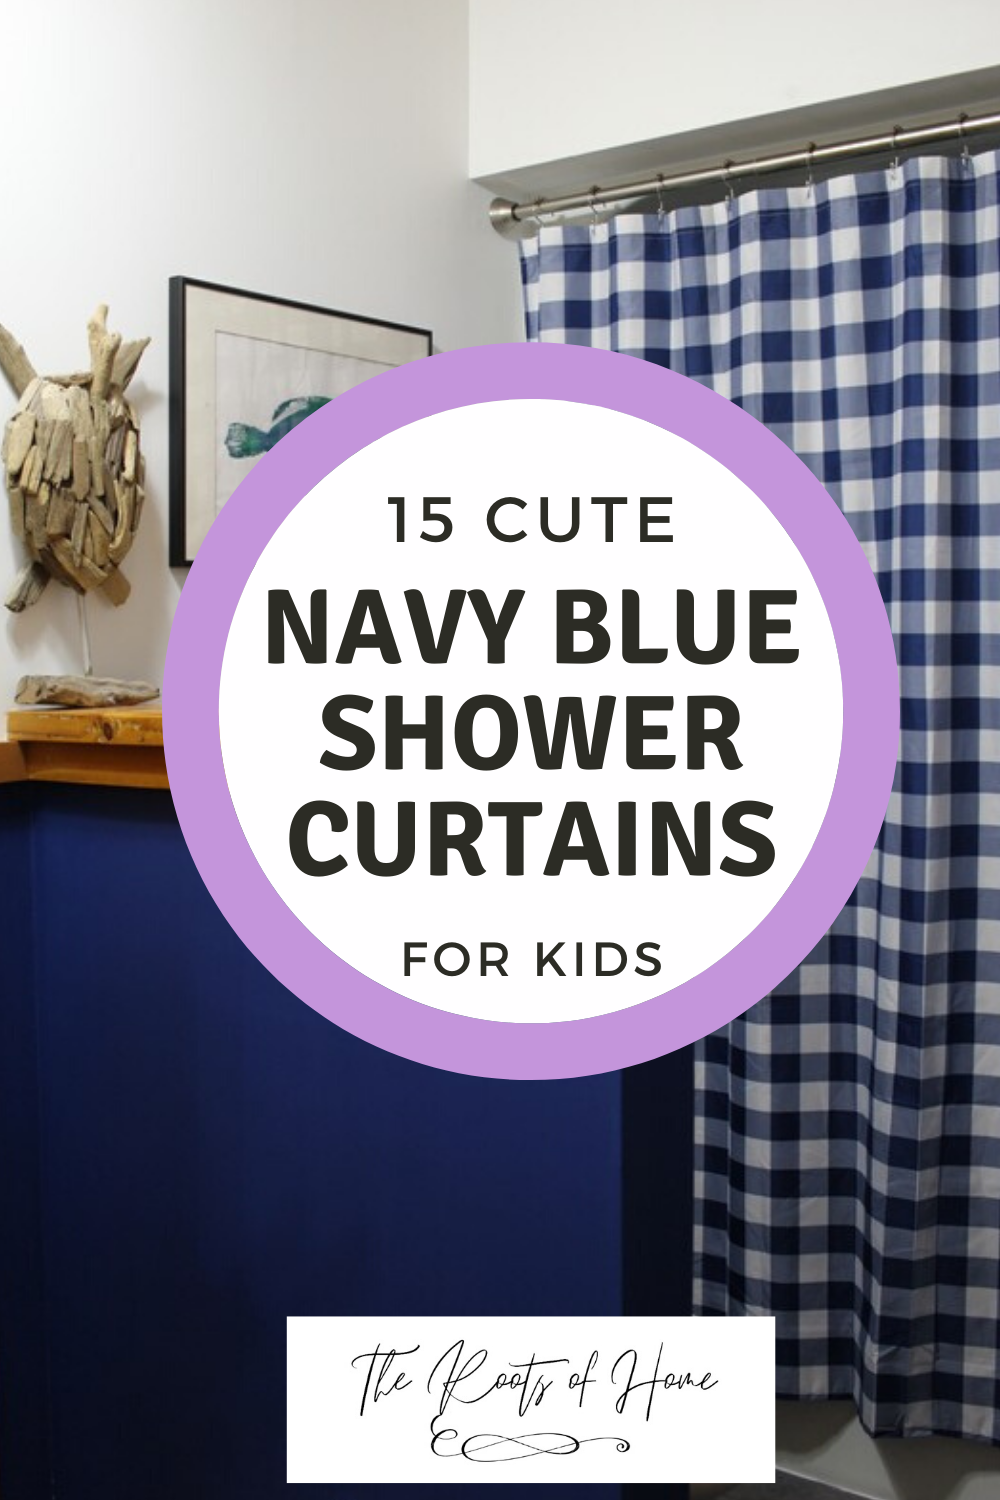 15 Cute Navy Blue Shower Curtains for Kids' Bathrooms